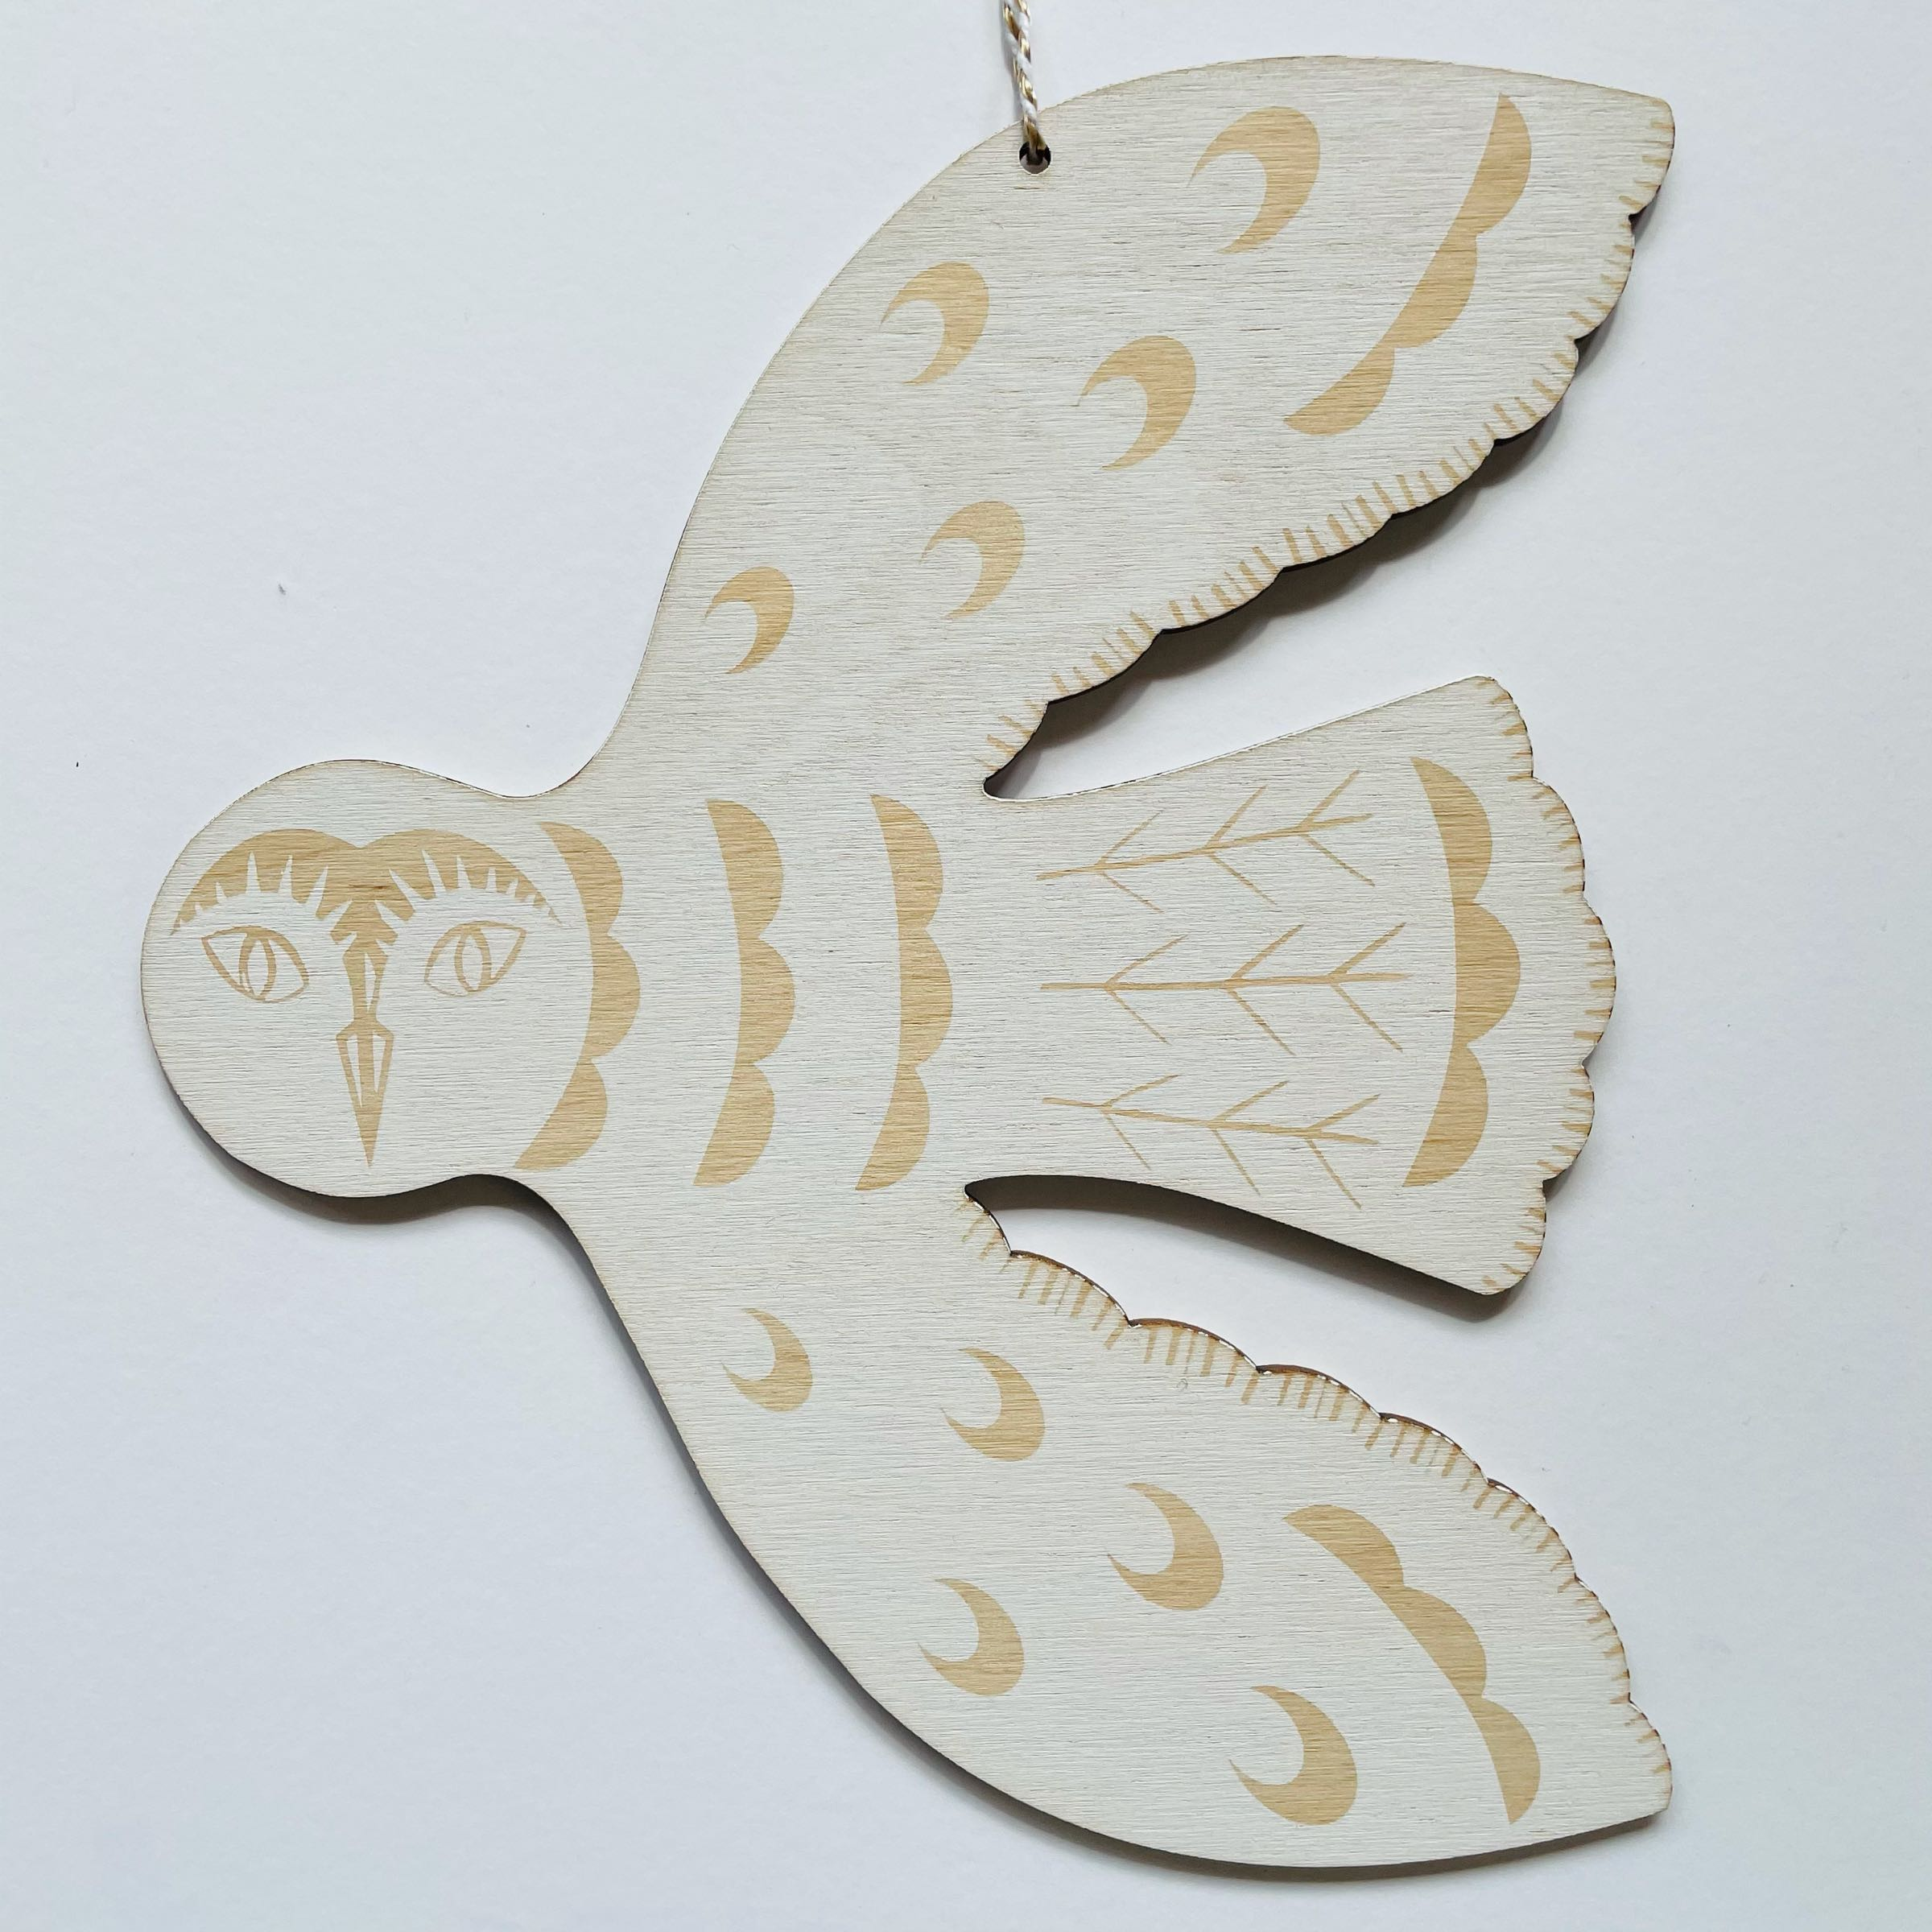 Hanging Owl by Kate Millbank